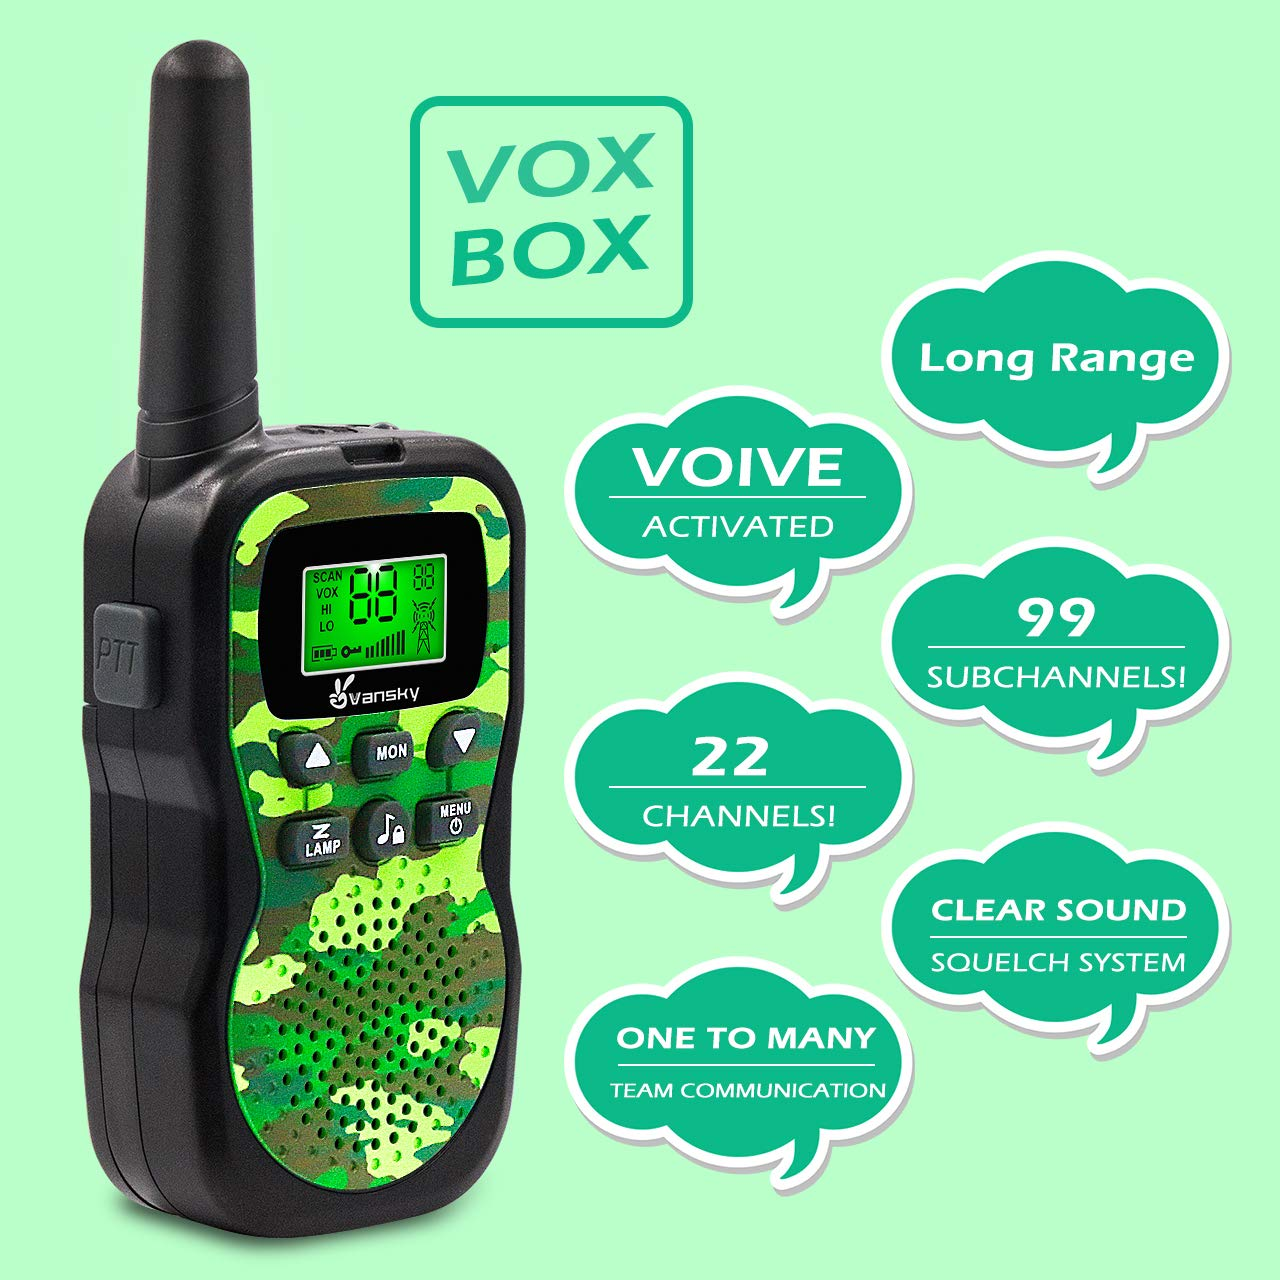 Vansky Walkie Talkies for Kids, Kids Toys 4 5 6 7 8 Age Boy Girl Long Range 22 Channel Built-in Flashlight 2 Way Radio Best Gifts Games, Outdoor Adventure, Camping, Hiking (Camo Green) by Vansky (Image #2)